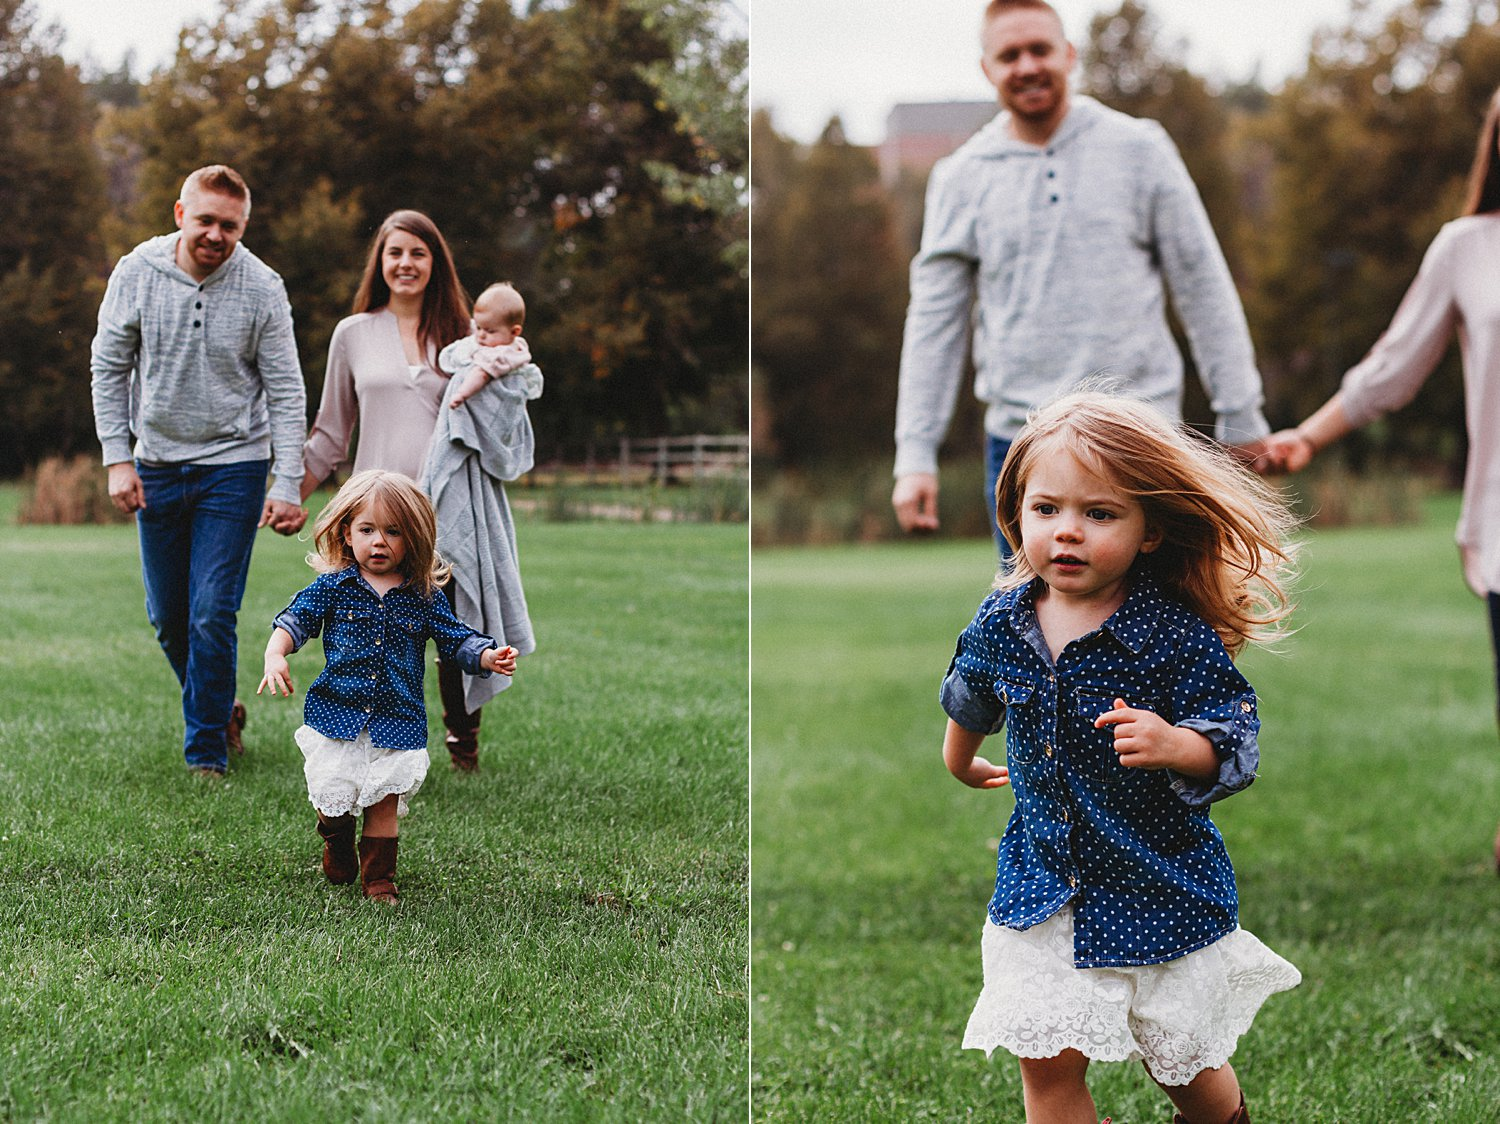 Lifestyle portraits of young family in grass field